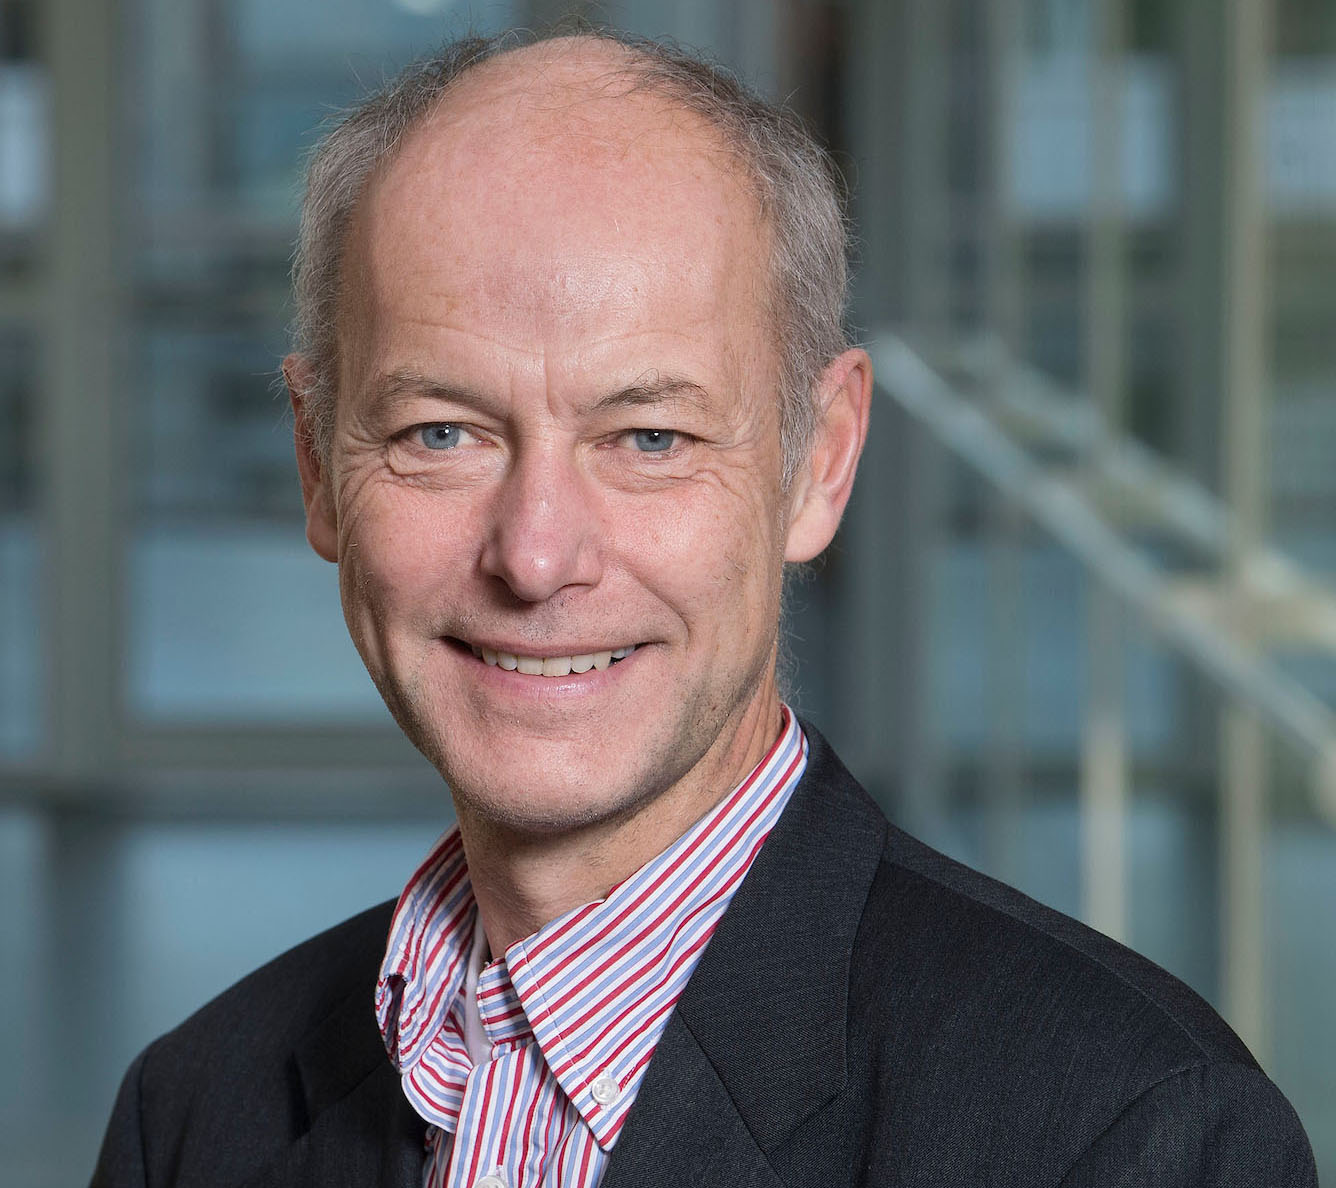 Professor Lars Arendt-Nielsen has founded the human research group at Aalborg University.